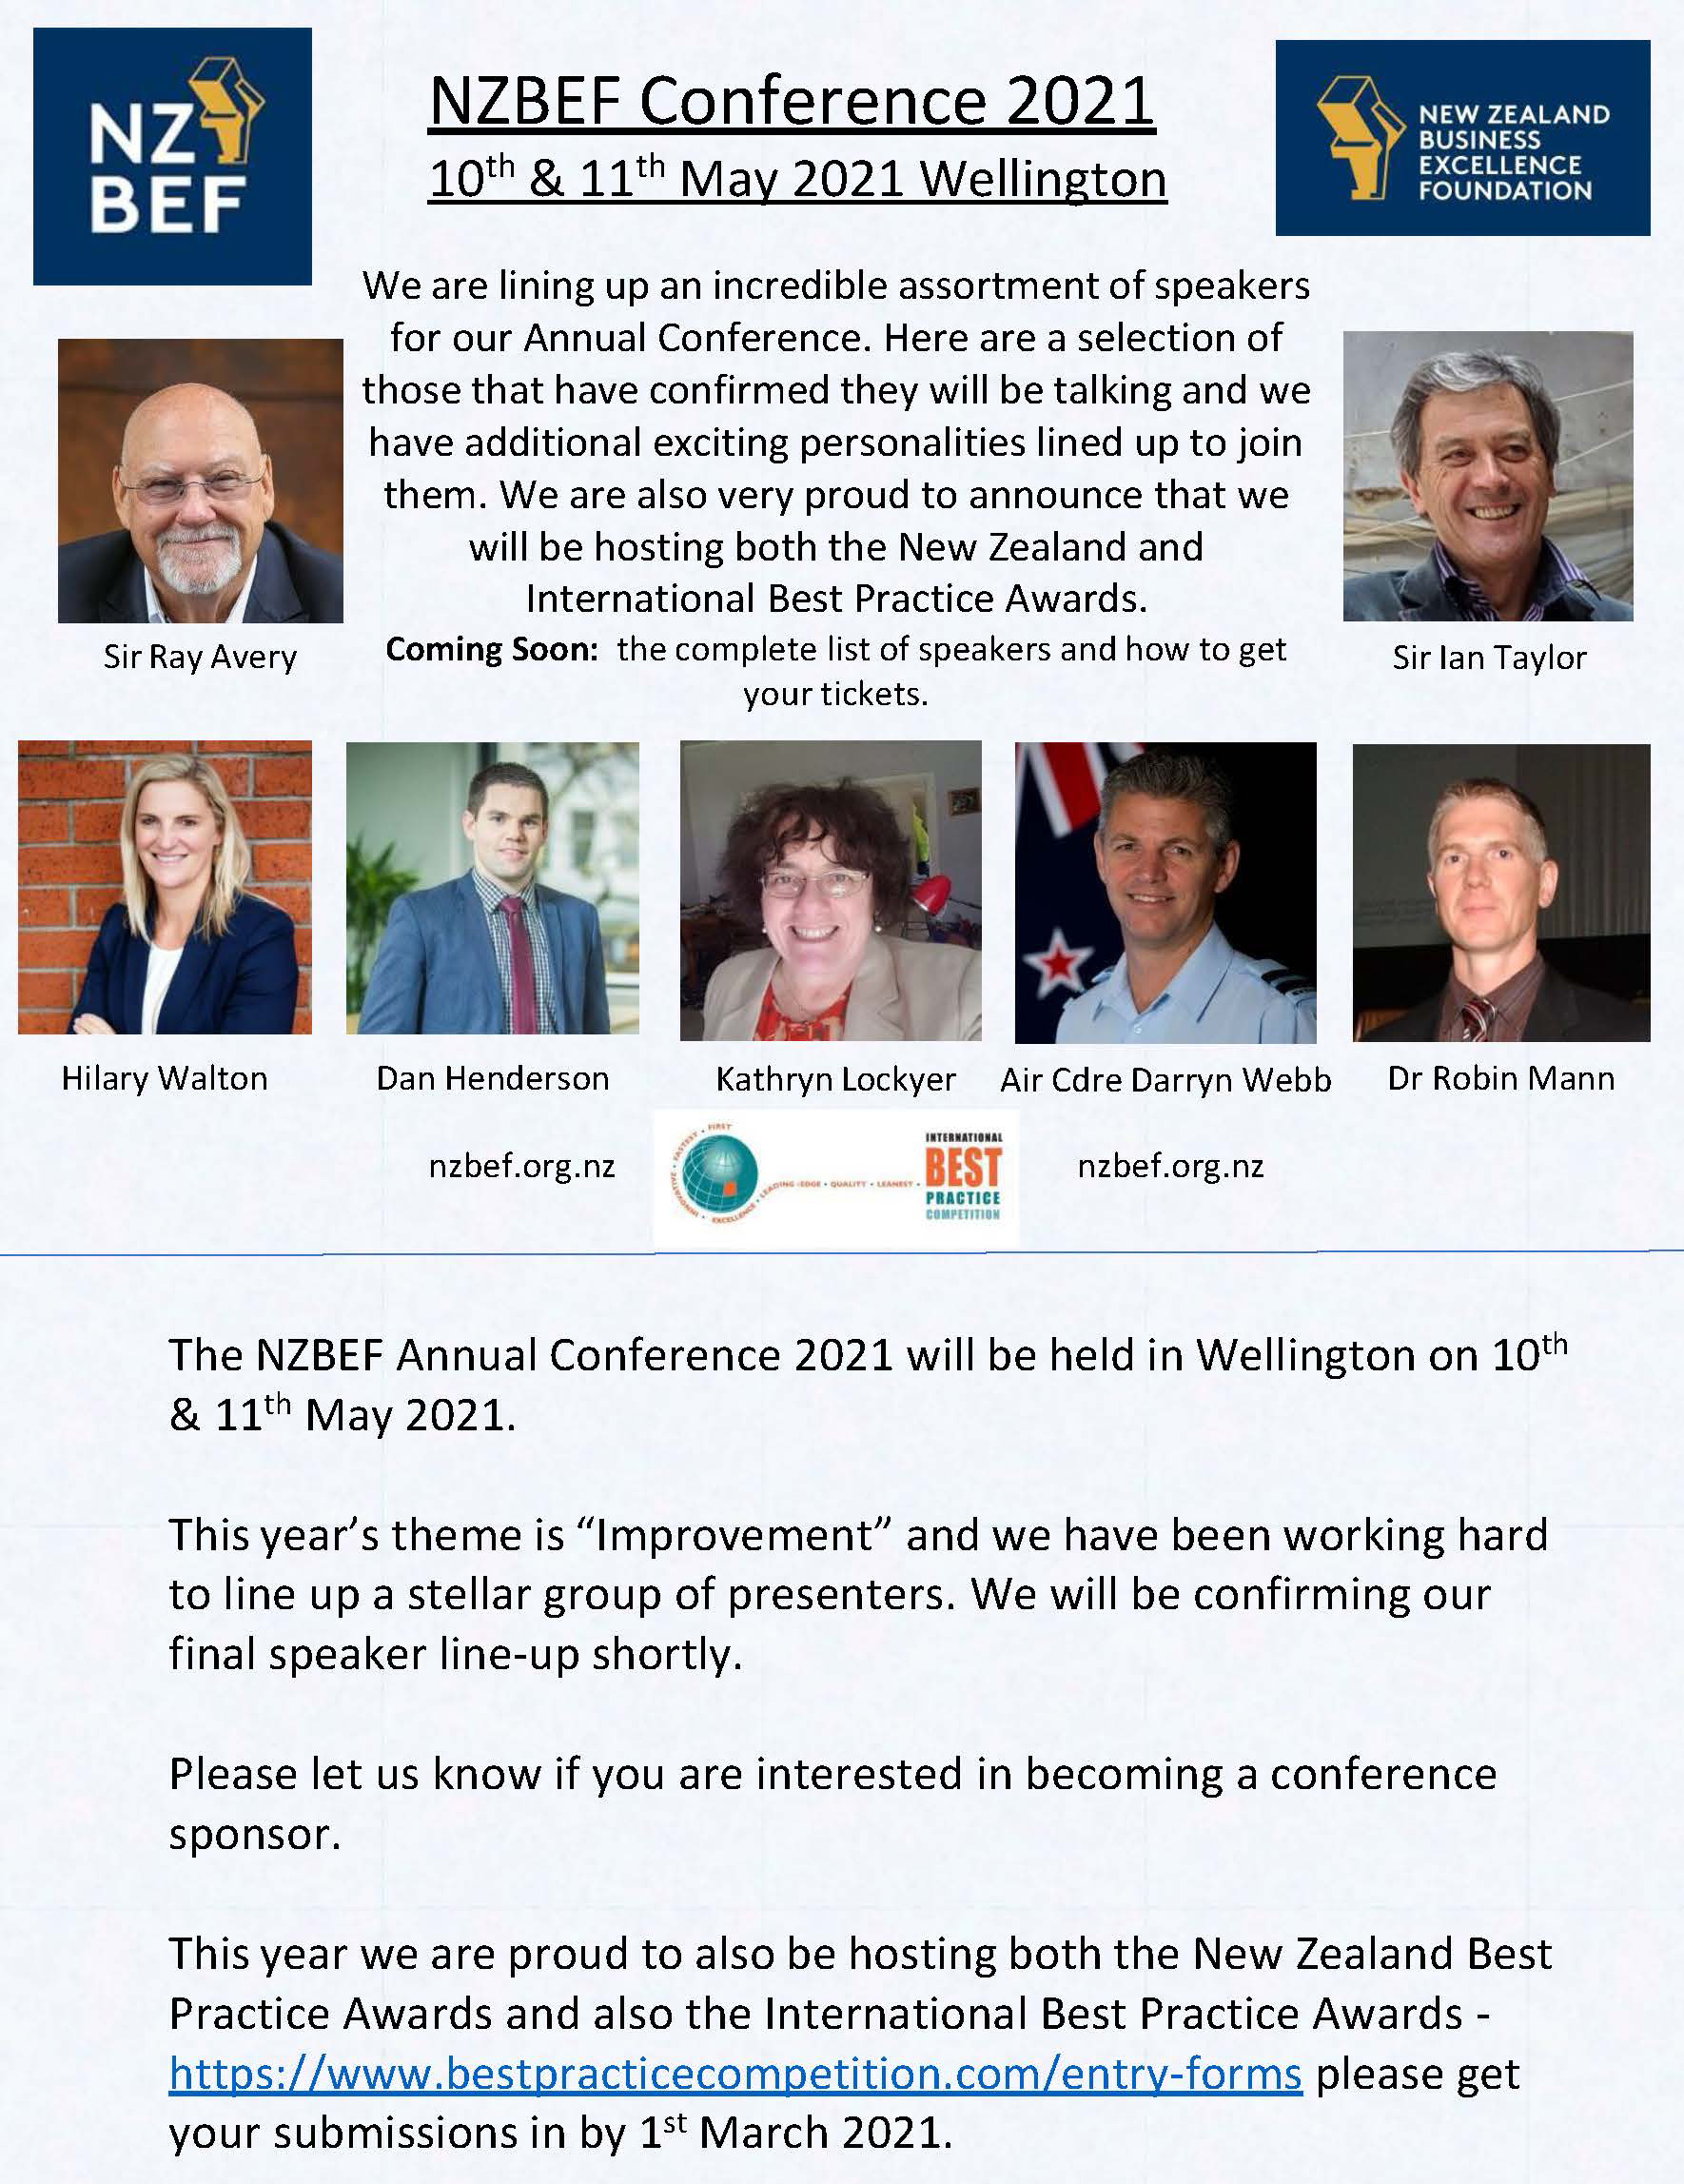 NZBEF Conference May 2021